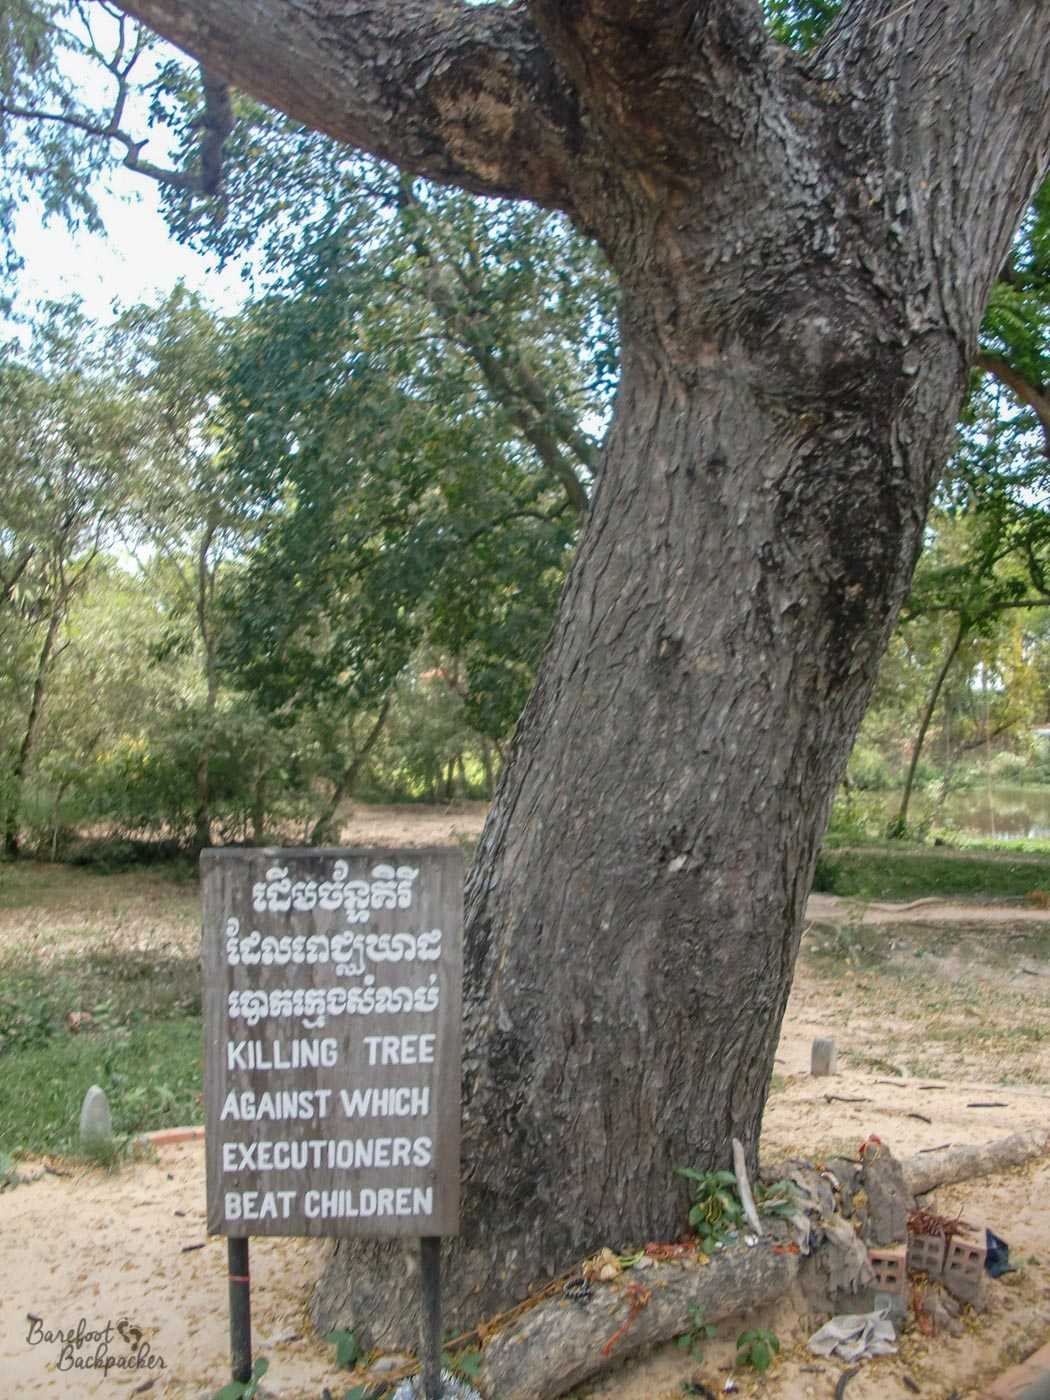 A large tree with a thick trunk and which seems to divide into several not much smaller trunks just up out of shot. By the side of the tree is a sign that says 'Killing tree against which executioners beat children'. One of the paintings in Tuol Sleng displayed how this took place.